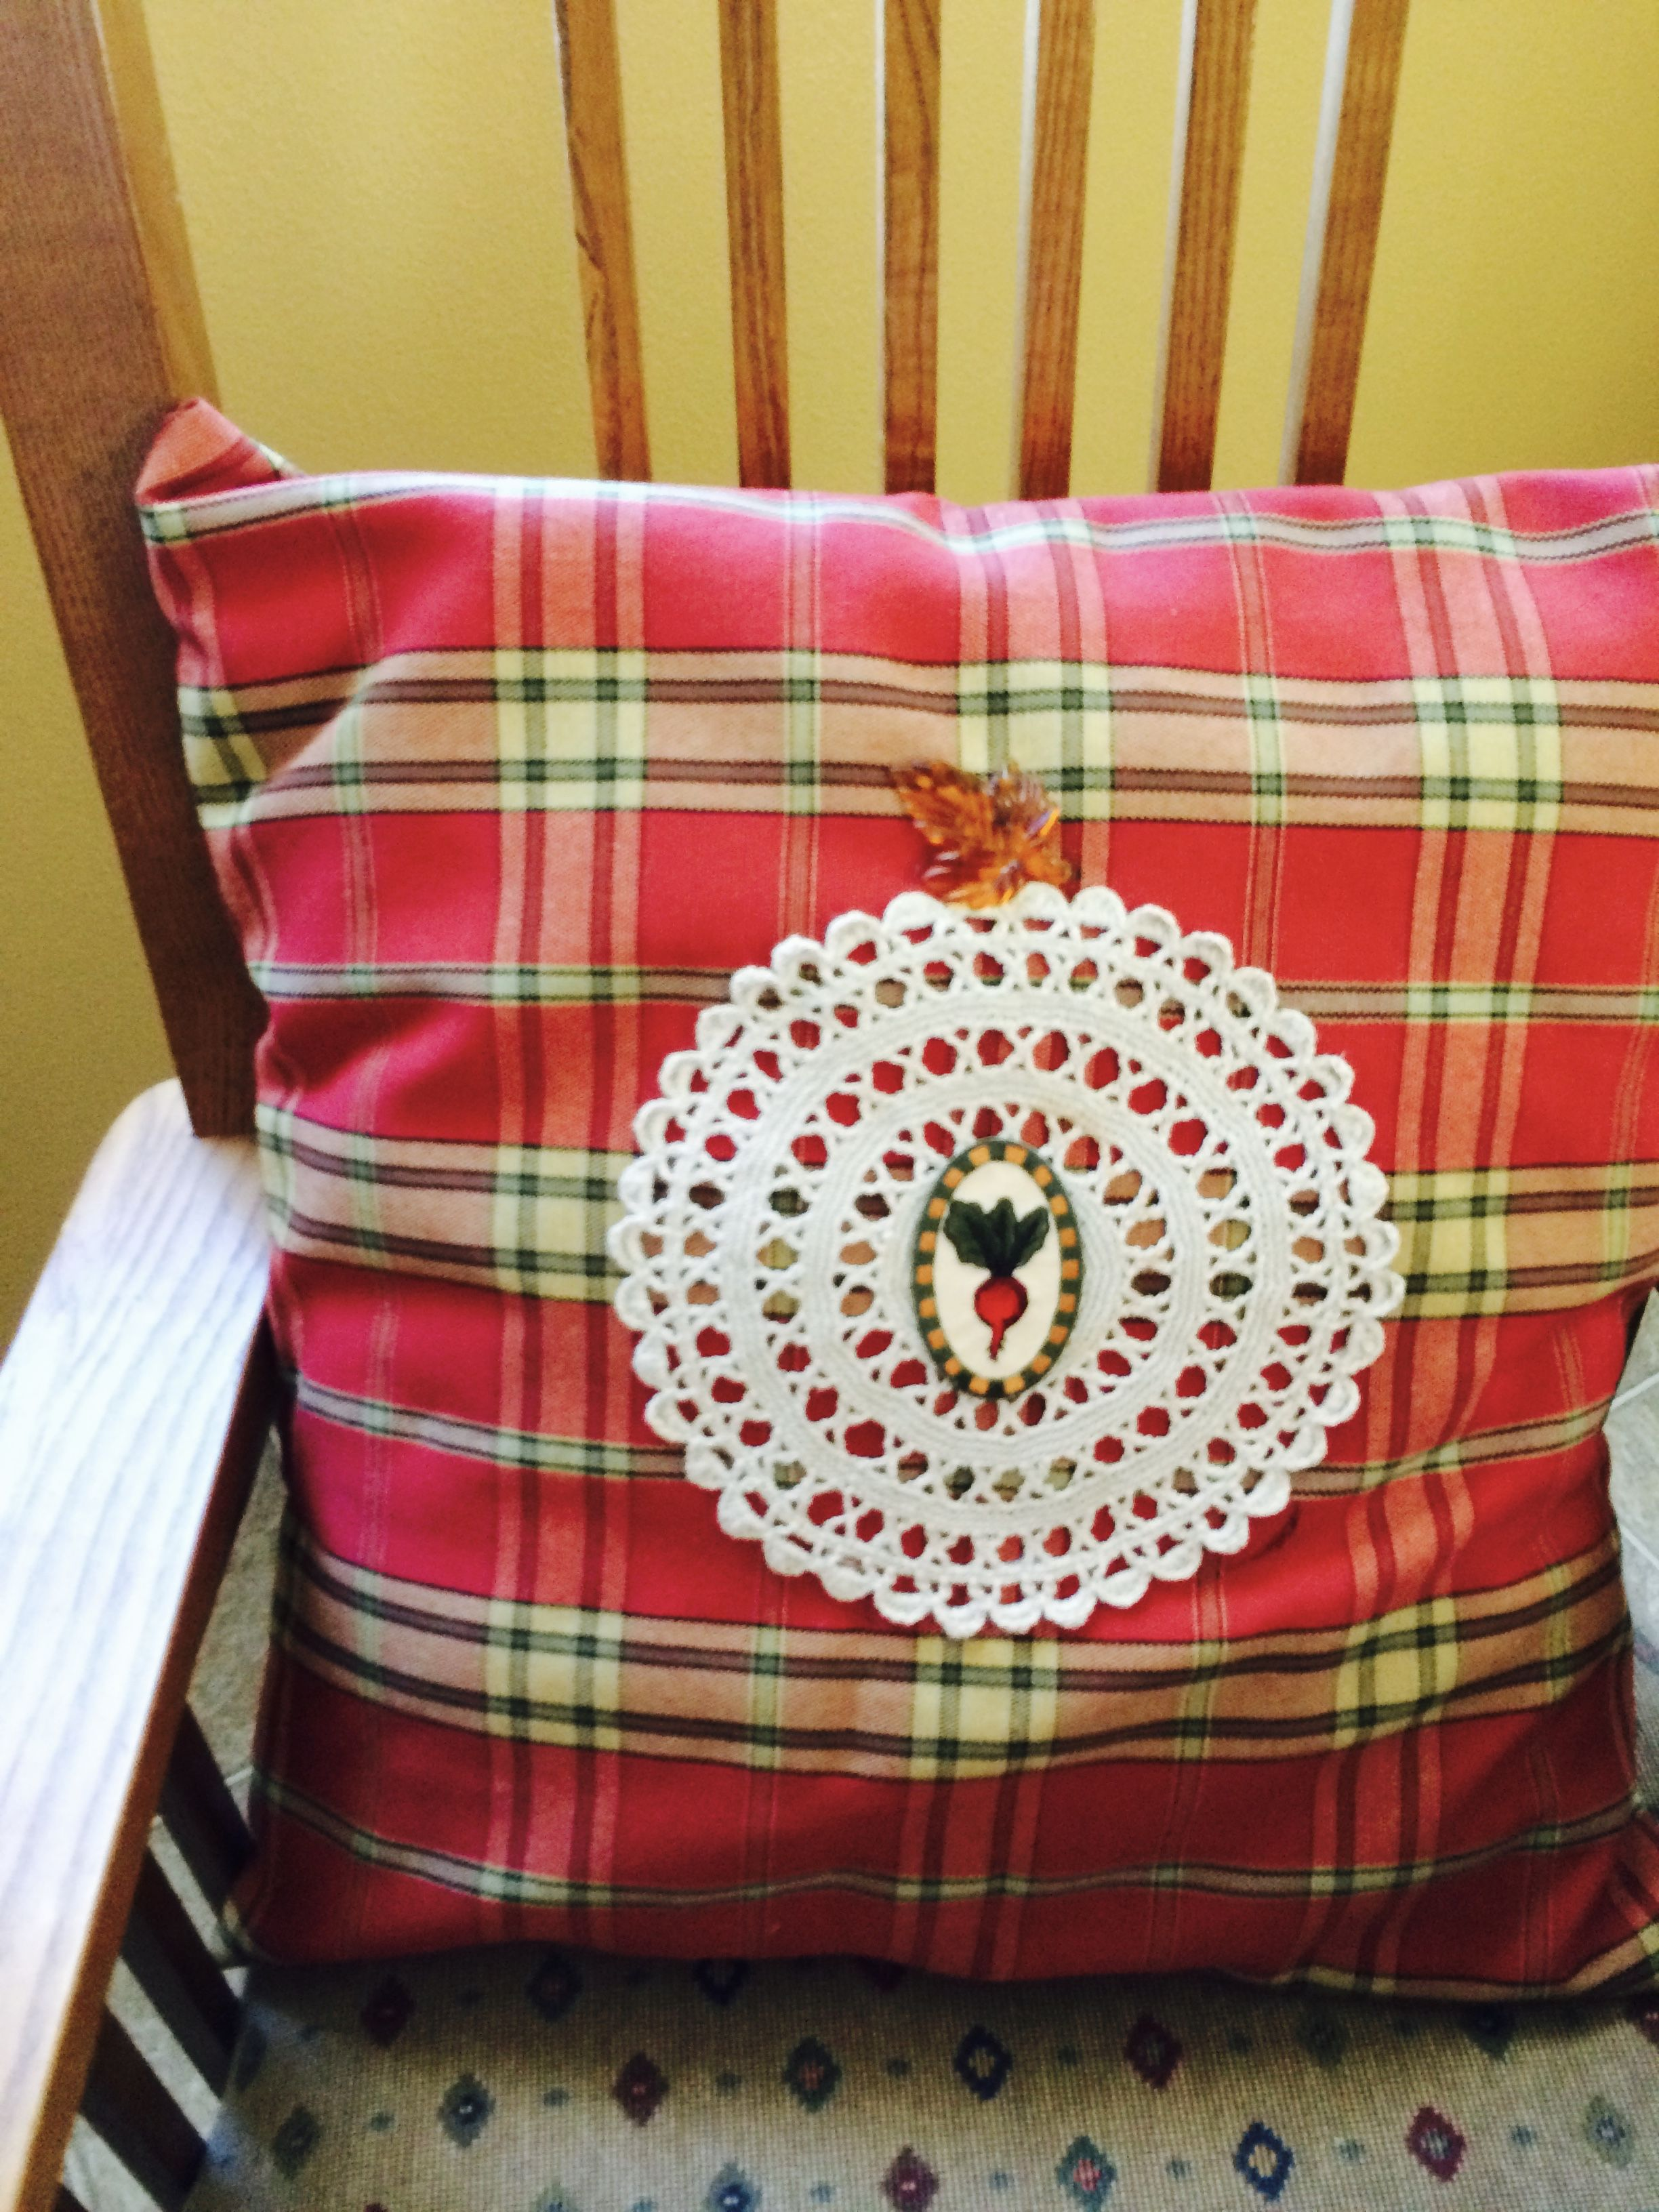 Nd dining chair pillow from table cloth with doily and a radish